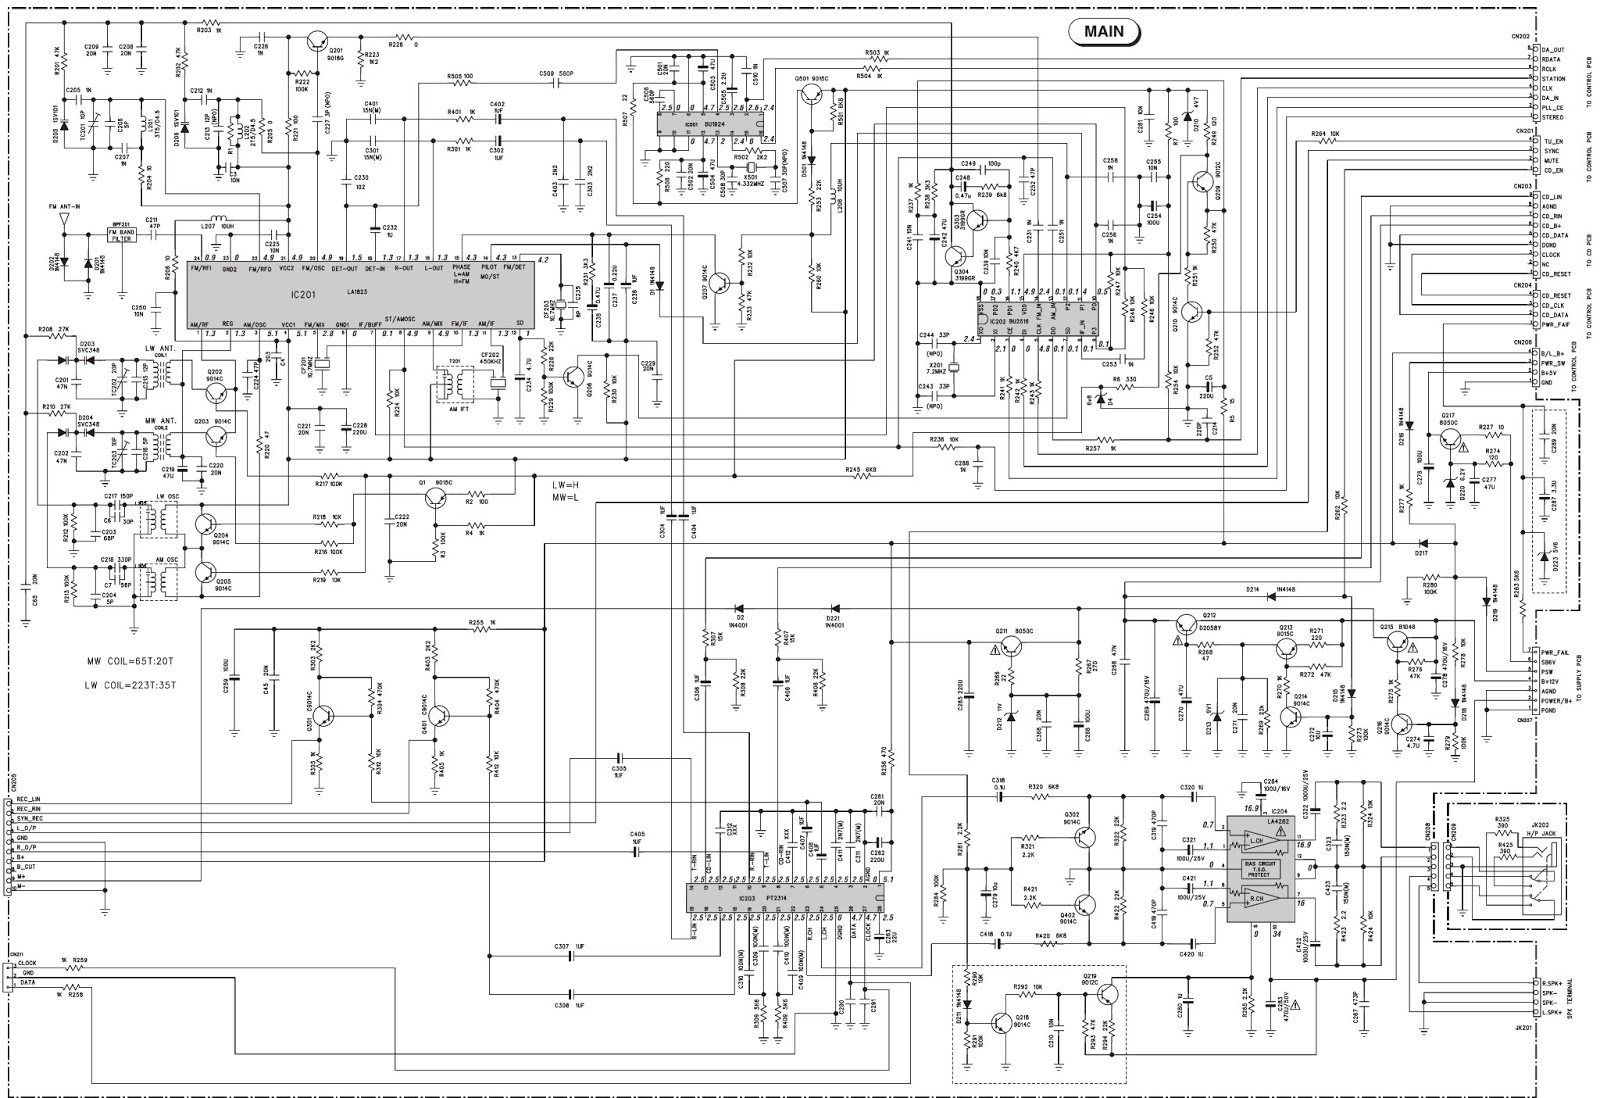 yamaha thomson cs 100 cs 105 schematic diagram circuit yamaha thomson cs 100 cs 105 schematic diagram circuit diagram